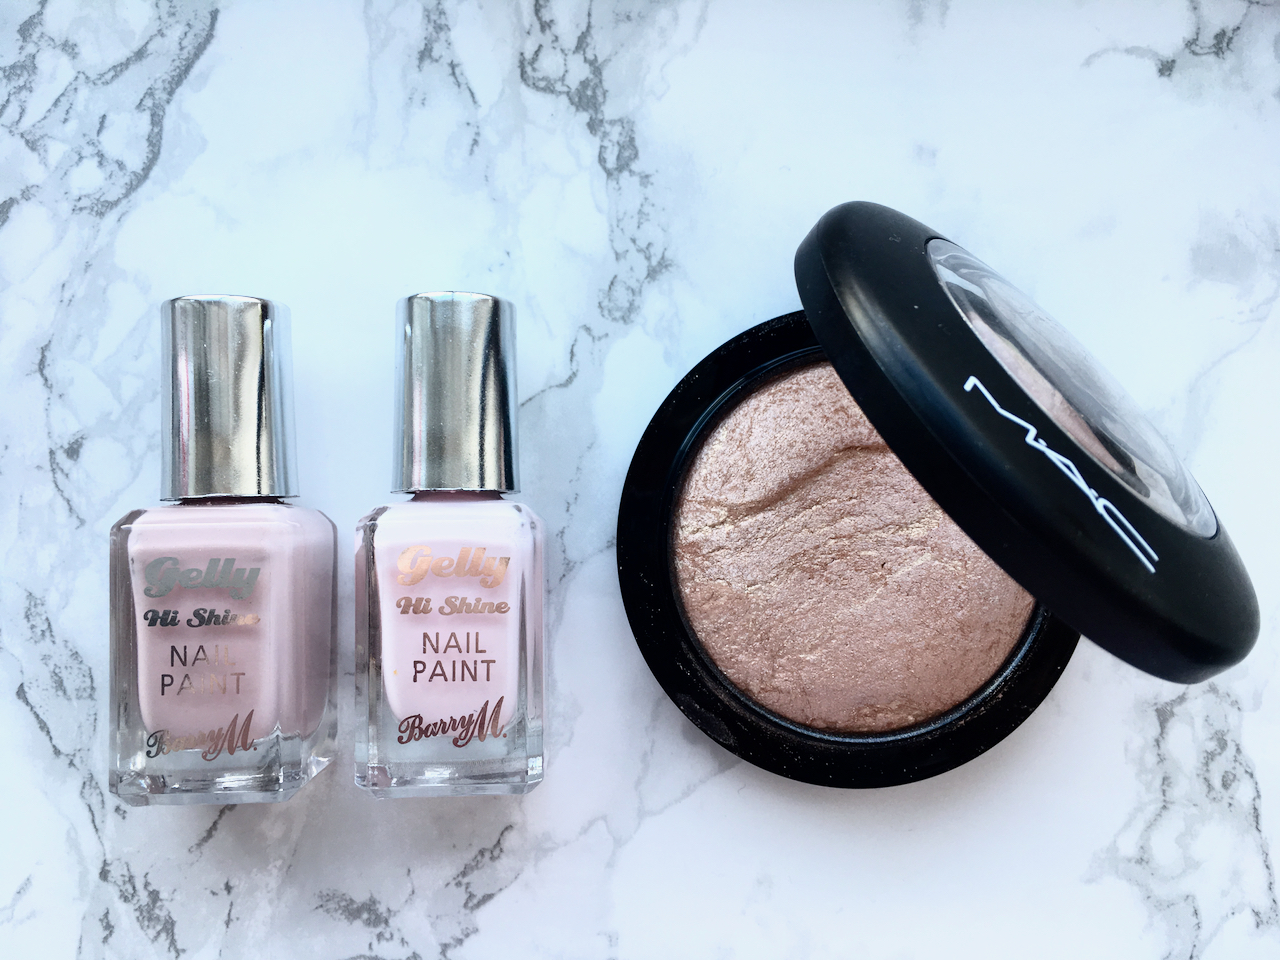 Beauty blogger favourites - Barry M Gelly Nail Paints and MAC Highlighter